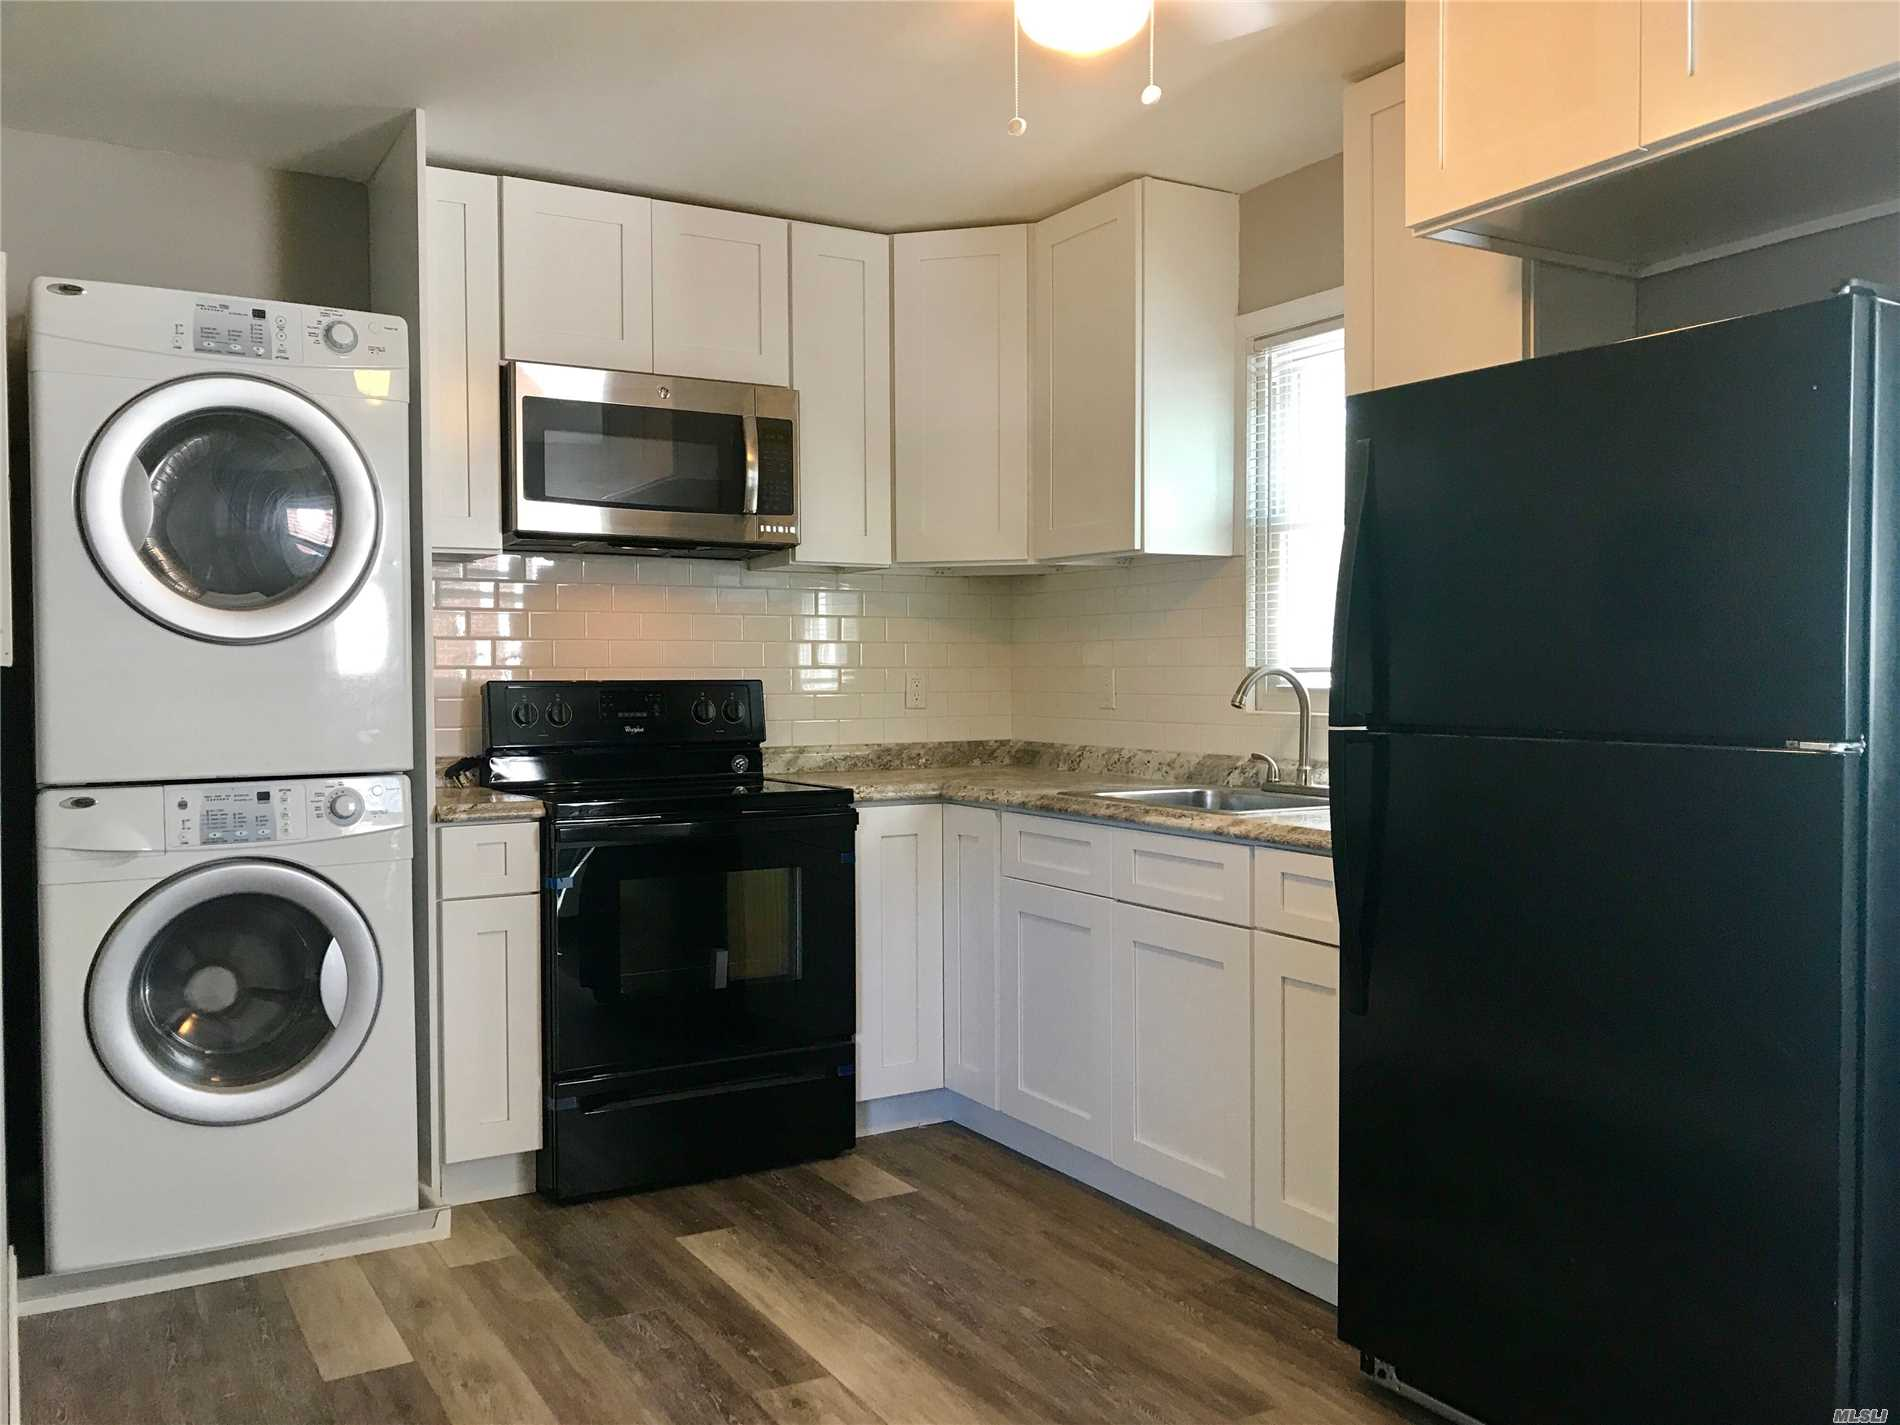 Beautiful Redone 2 Bedroom 1 Bath Apartment. Updated Eat In Kitchen With Updated Appliances/Counters And White Shaker Cabinets. Plus A Washer And Dryer Included. Updated Designer Bathroom With All Updated Fixtures. Plus 2 Ac's In The Wall. Absolutely No Pets Or Smoking (Also No Smoking On Premises Of House)